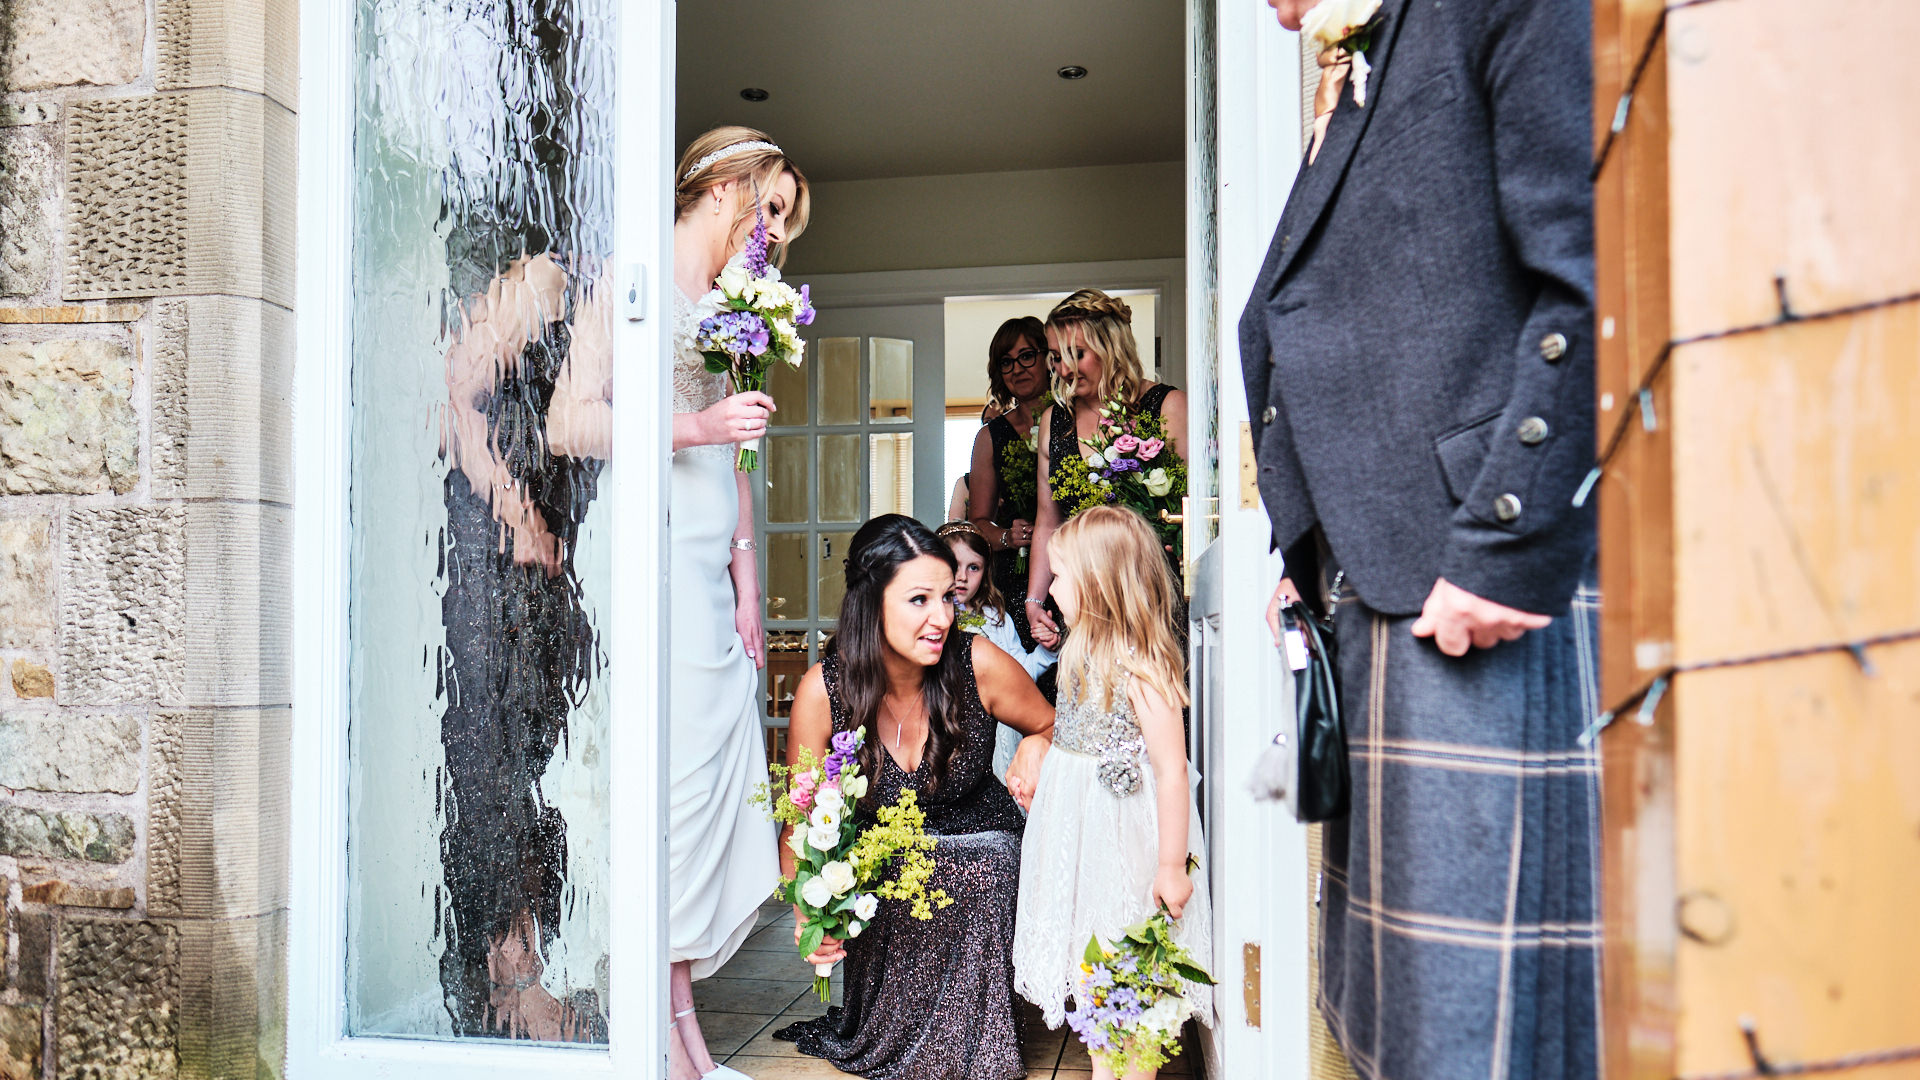 colour photograph of the bride and her bridal party getting ready to walk to the wedding ceremony being held at the bride's home